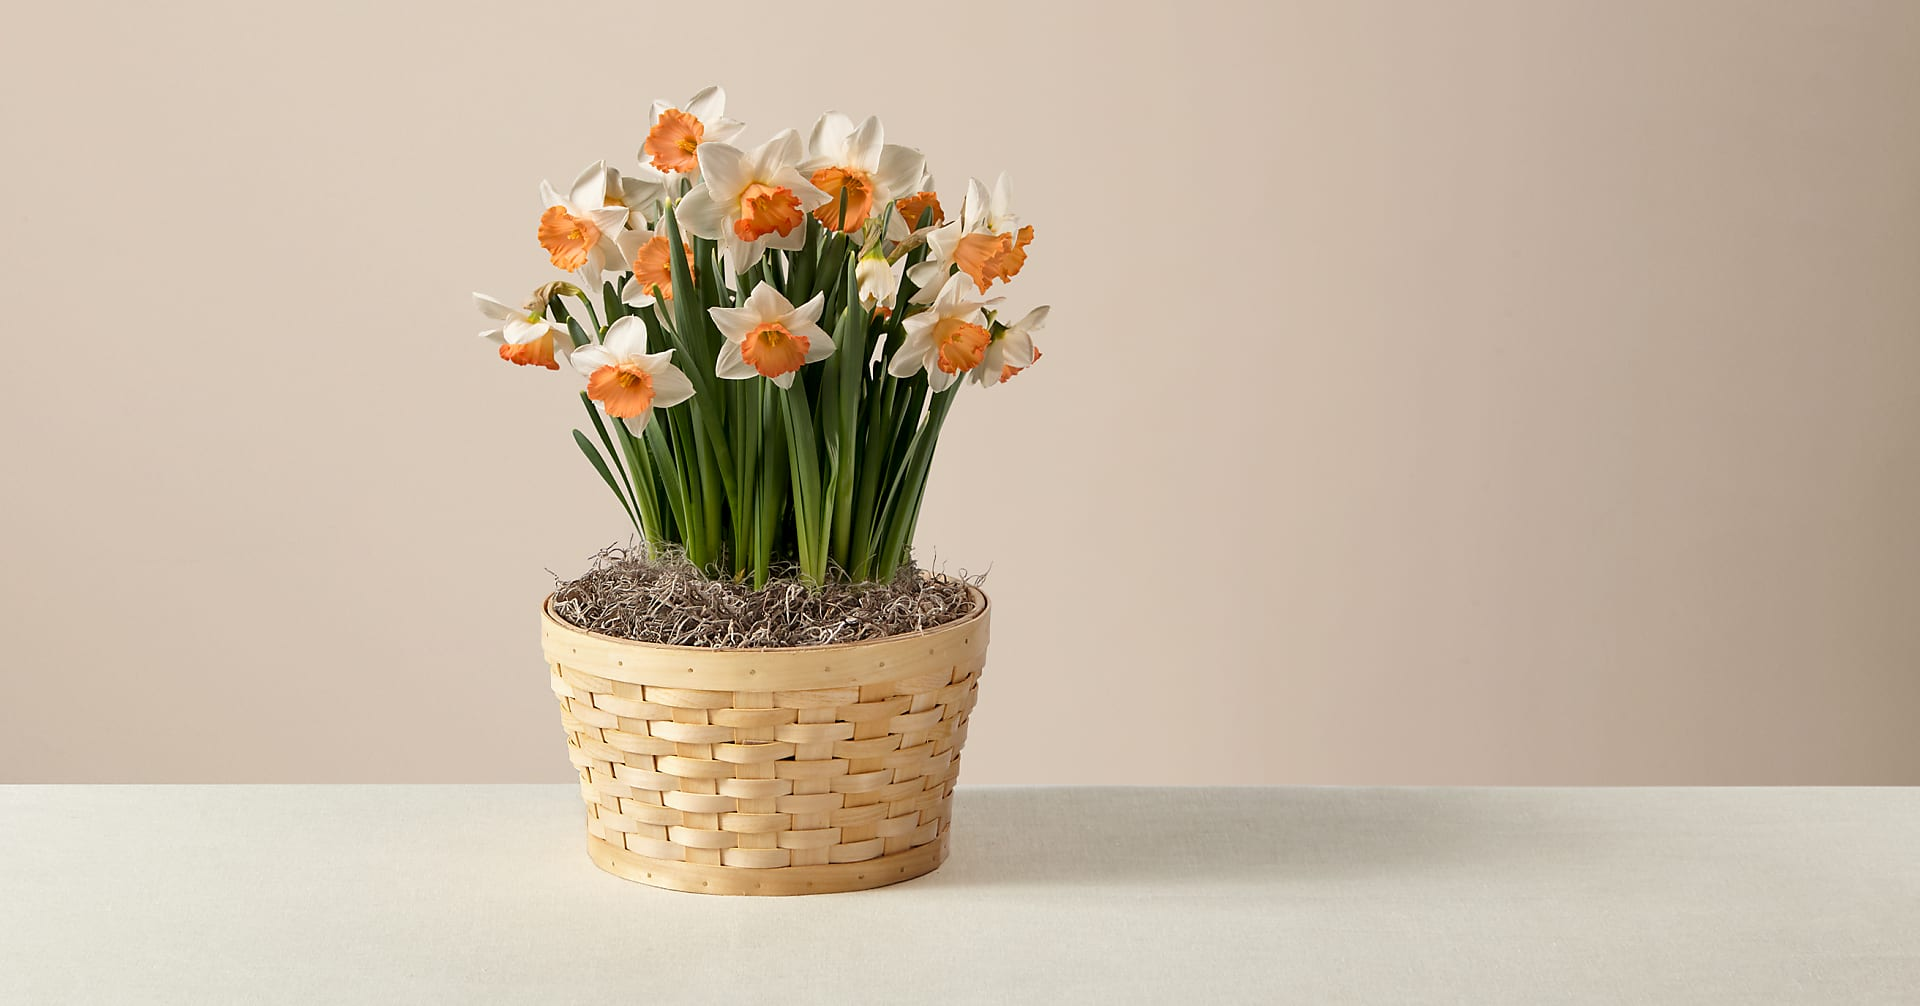 Orange You Glad Daffodil Garden - Image 1 Of 3